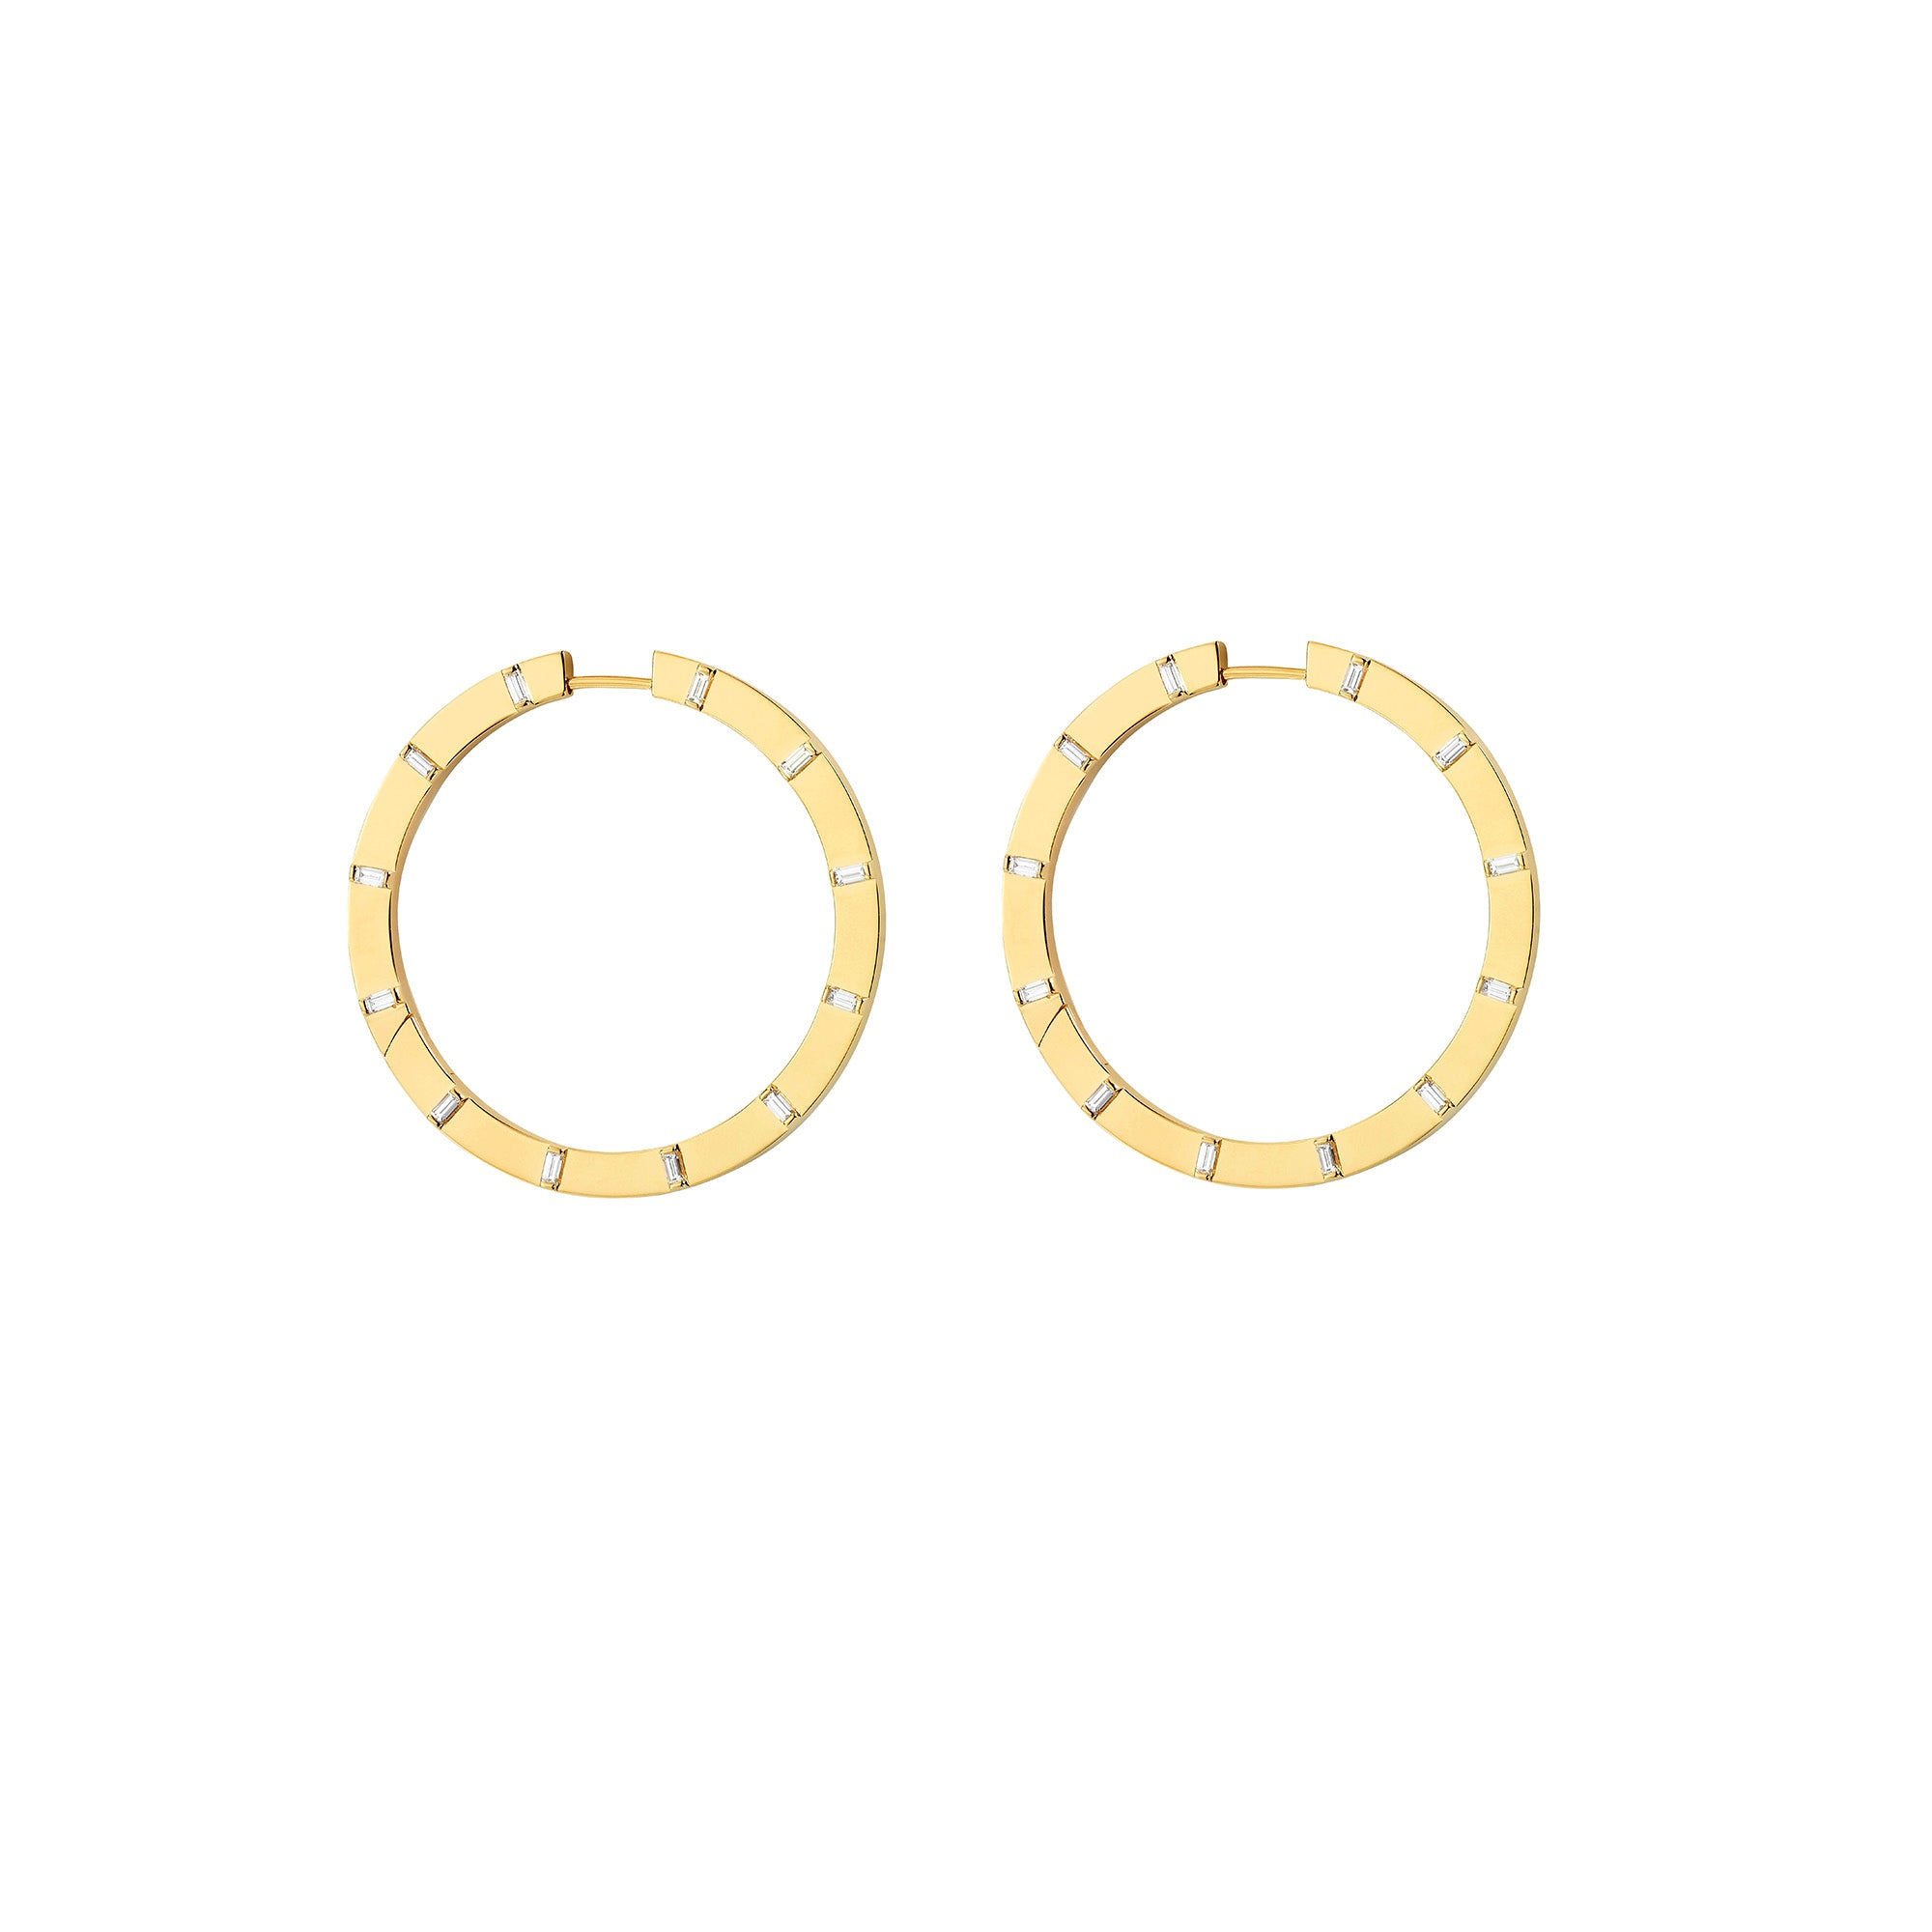 Sole Medium Hoop Earrings - Cadar - Earrings | Broken English Jewelry